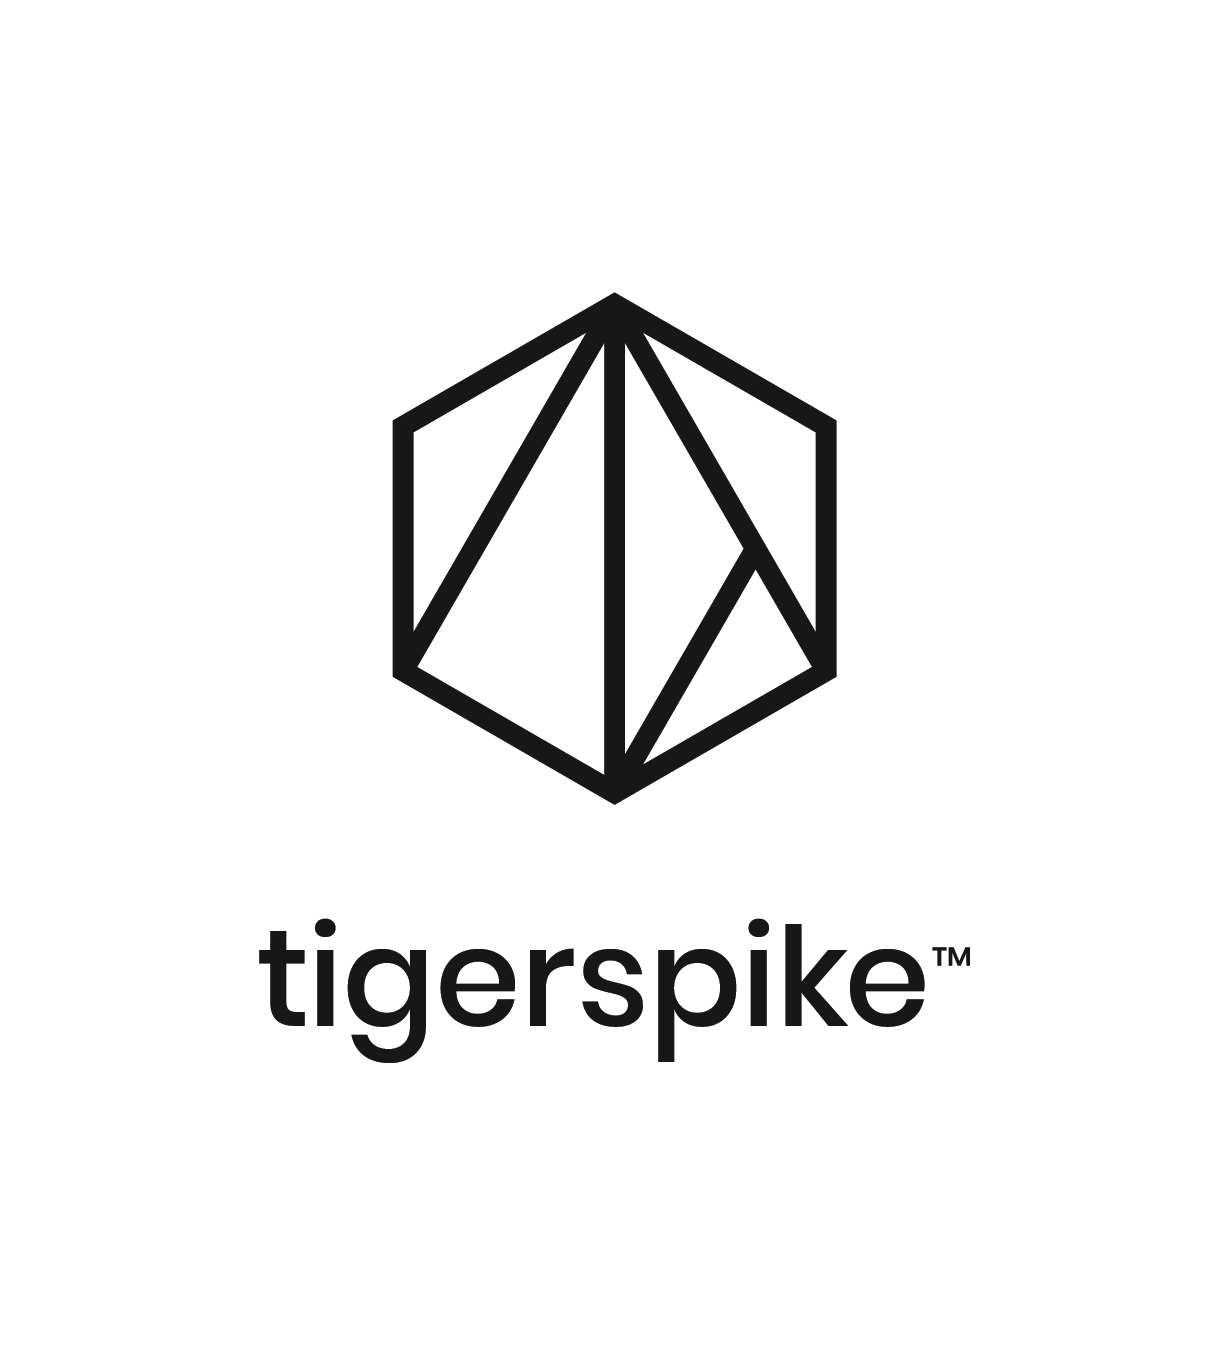 Tigerspike Vertical - Light.png